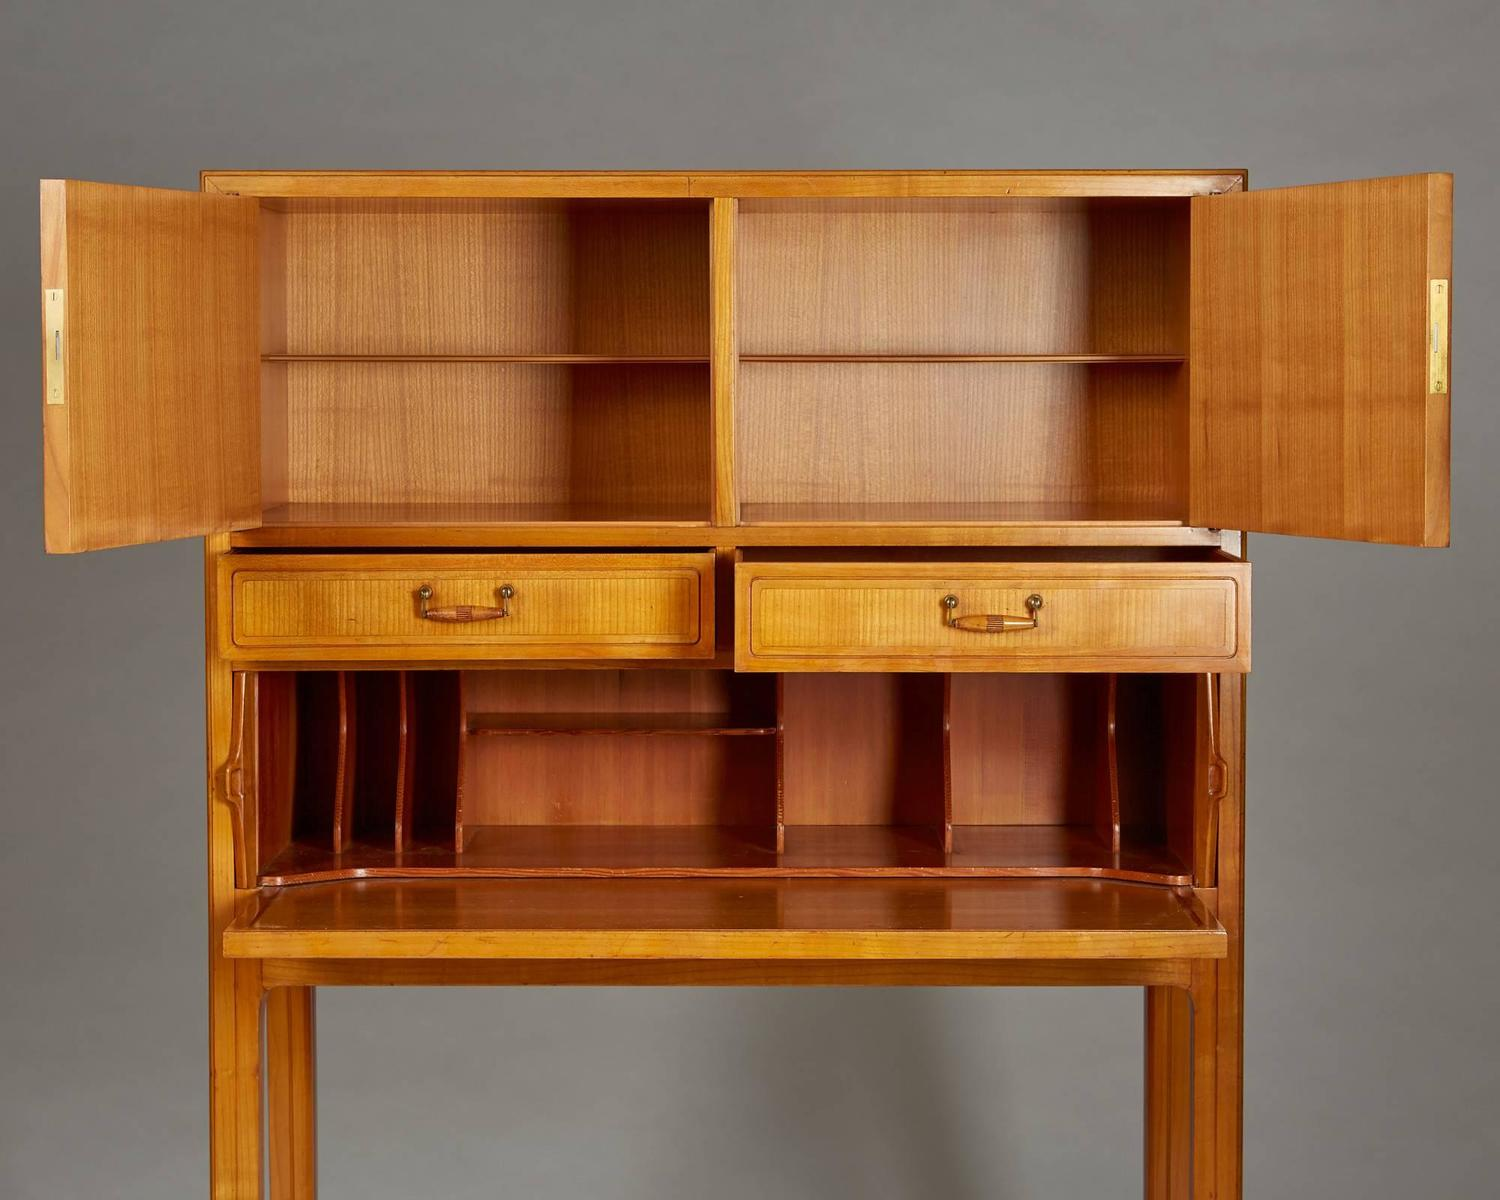 Cabinet attributed to hjalmar jackson sweden 1940s for for 1940s kitchen cabinets for sale